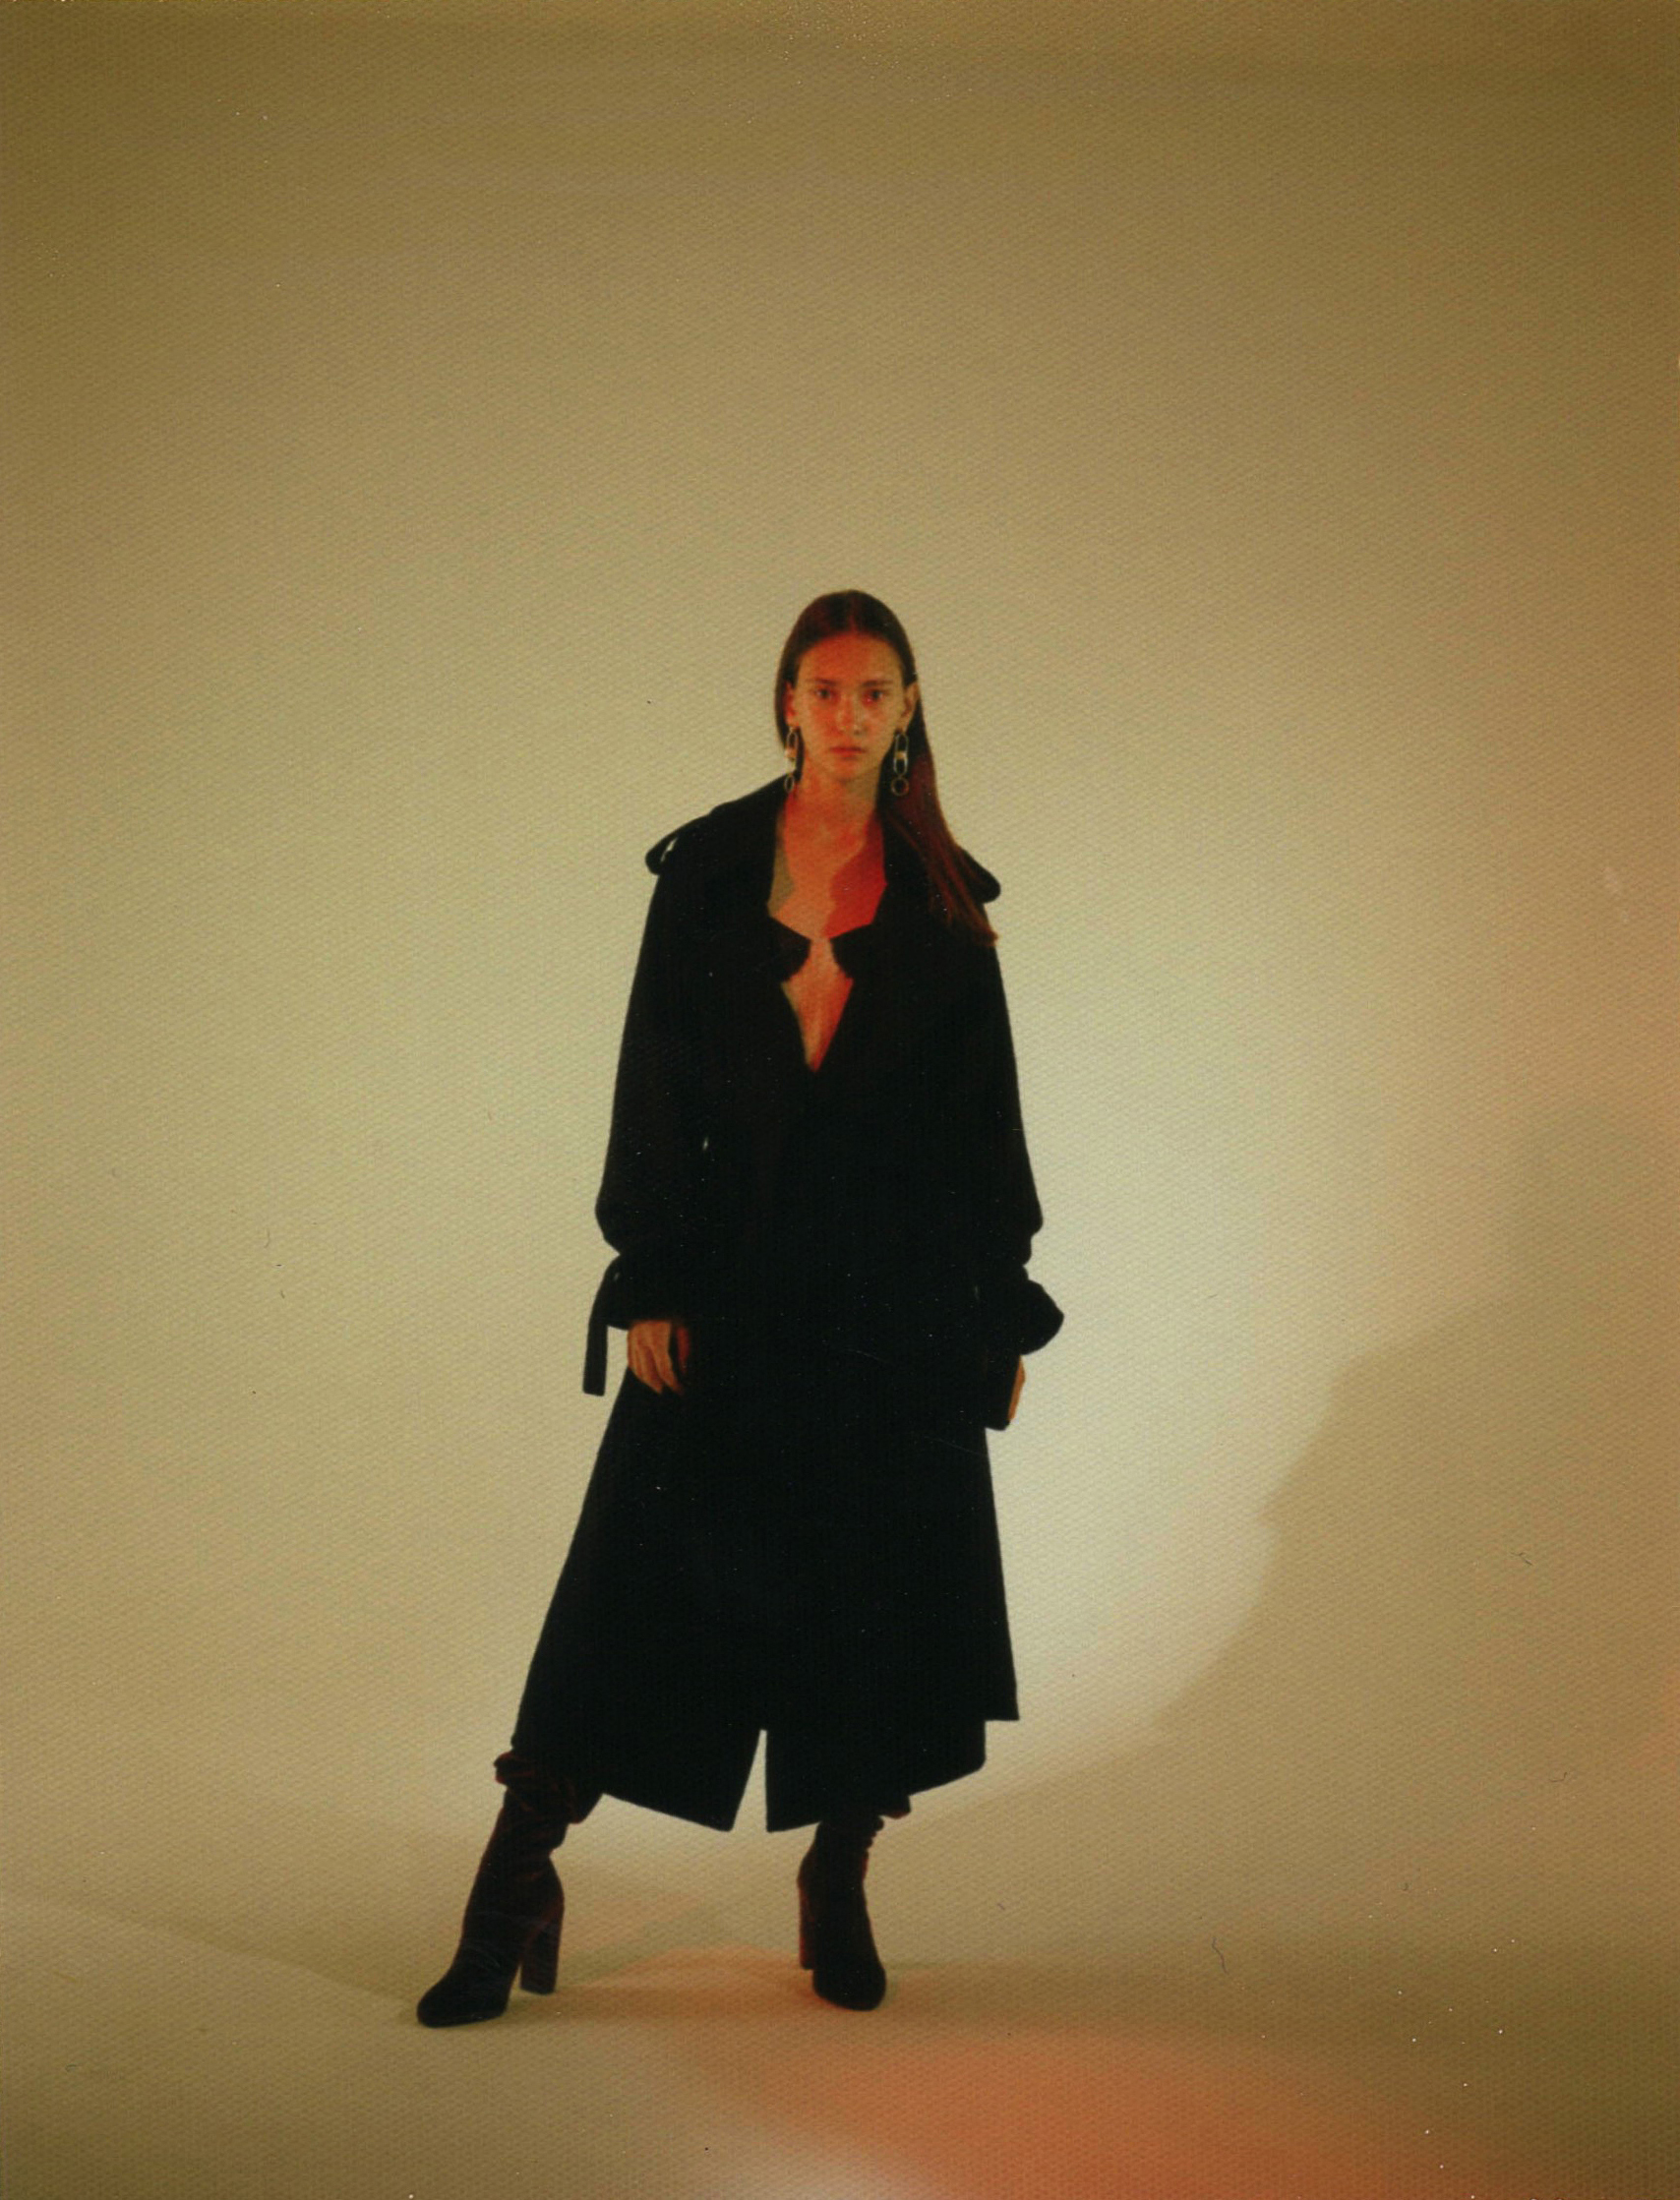 black wool trench coat  COMEFORBREAKFAST  strappy bodycon dress with pink fur detail  ALBERTO ZAMBELLLI  bordeaux suede over-the-knee boots STEVE MADDEN